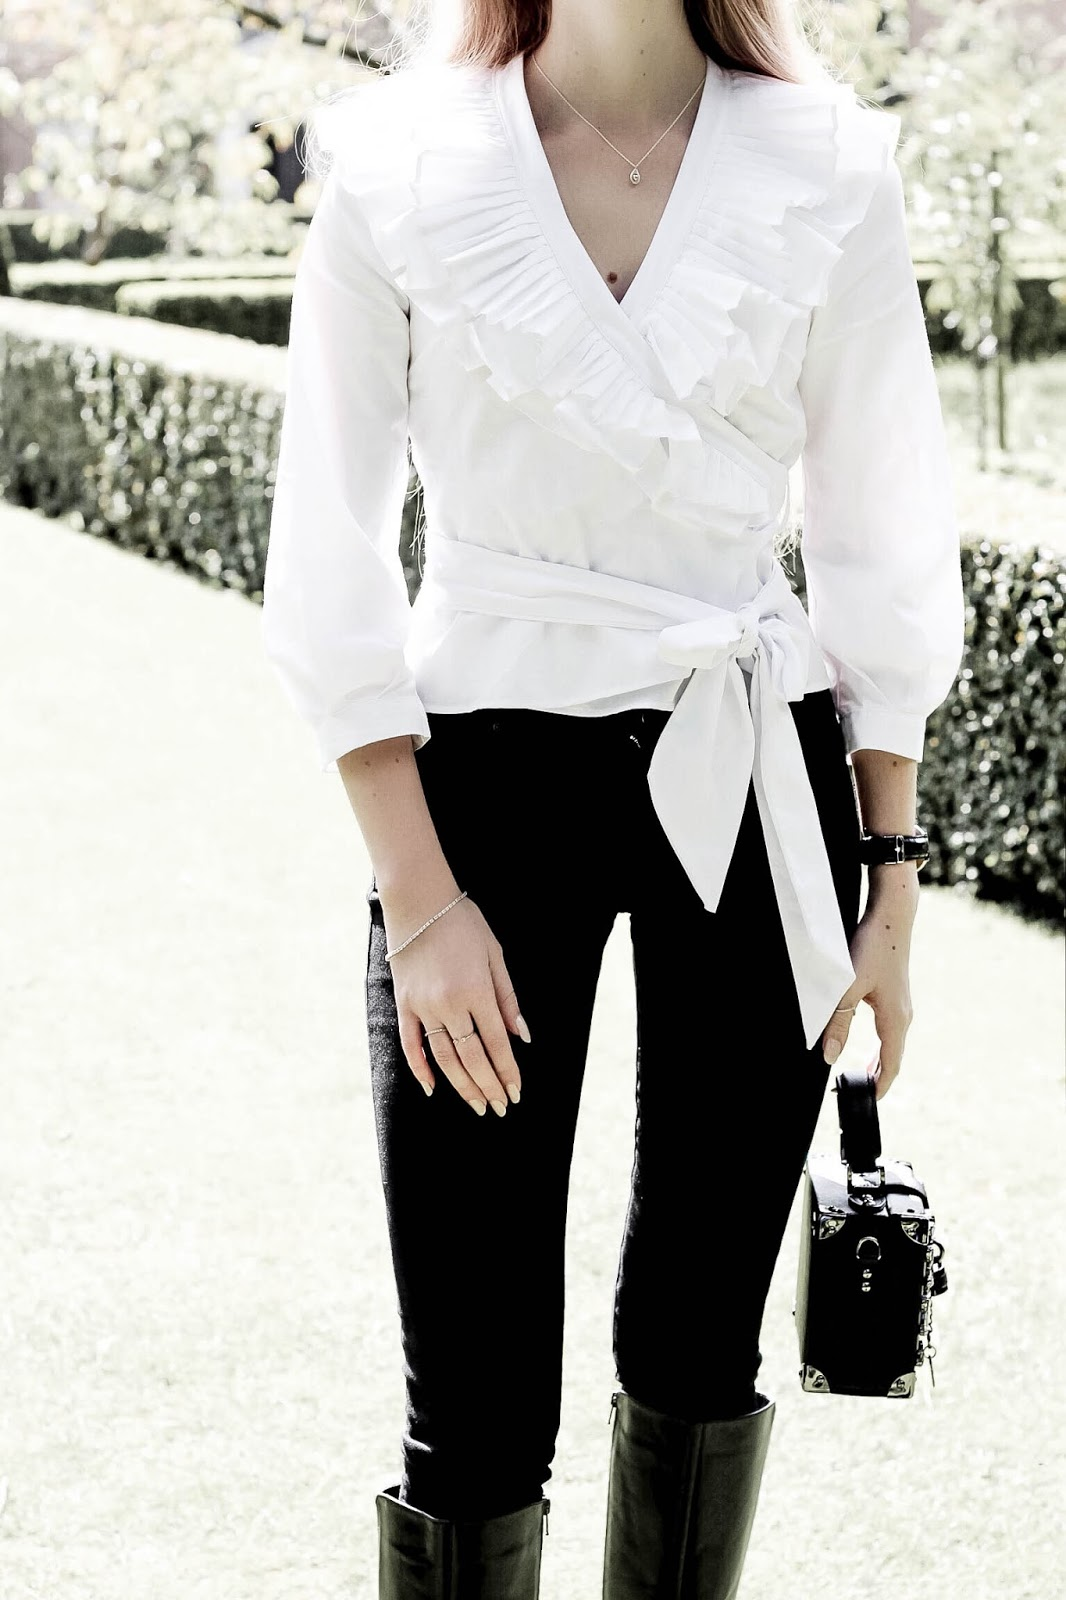 Topshop White Wrap Style Pleated Ruffle Shirt